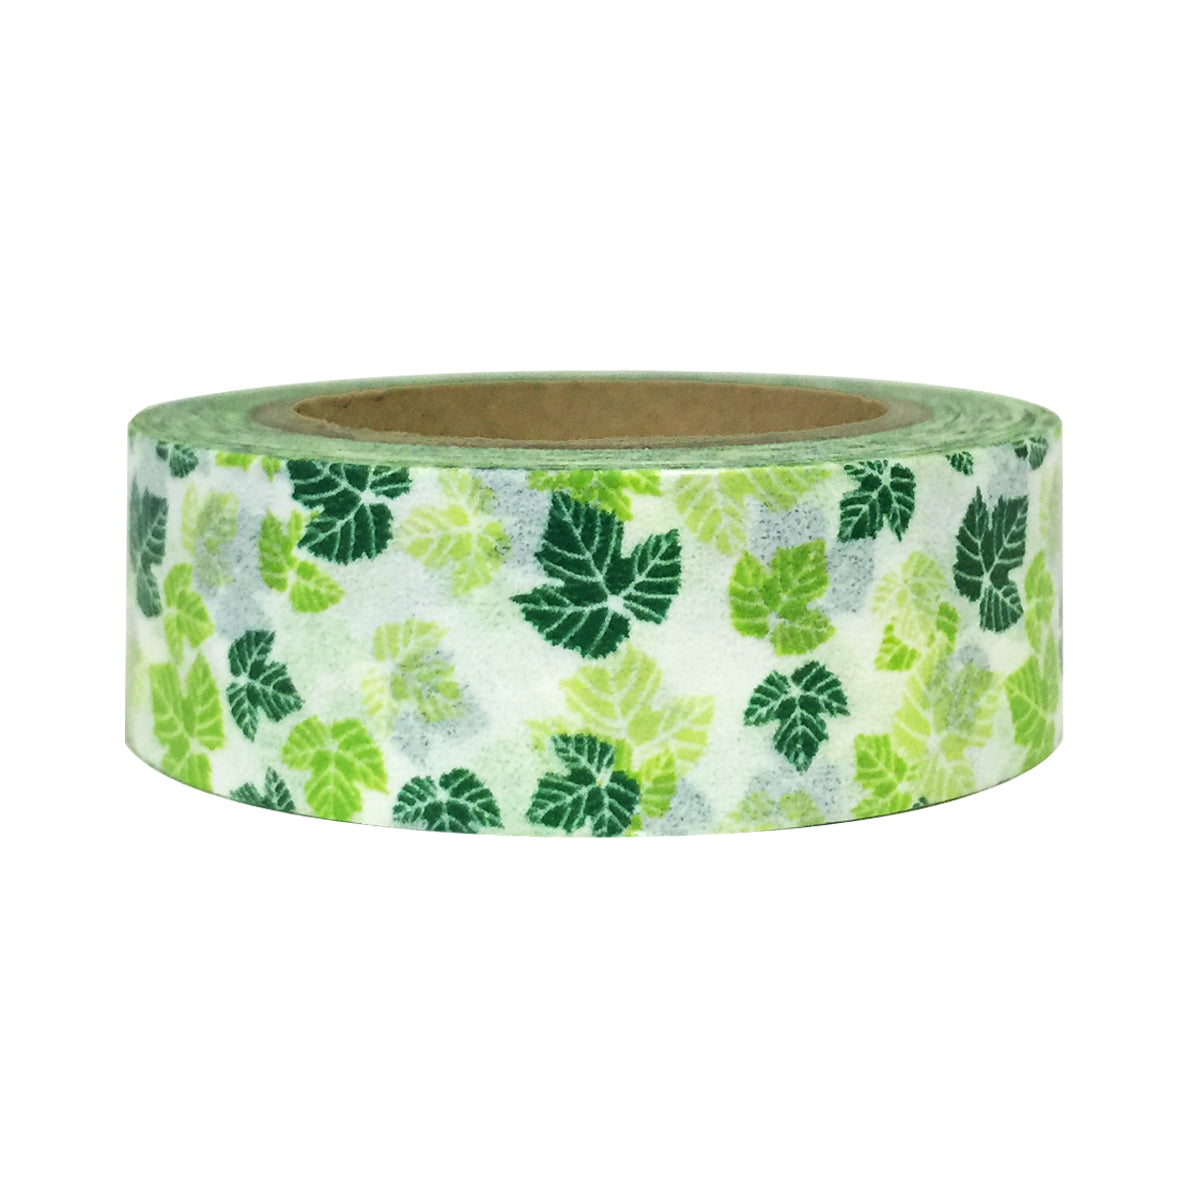 Wrapables Washi Masking Tape, Cute and Colorful Group